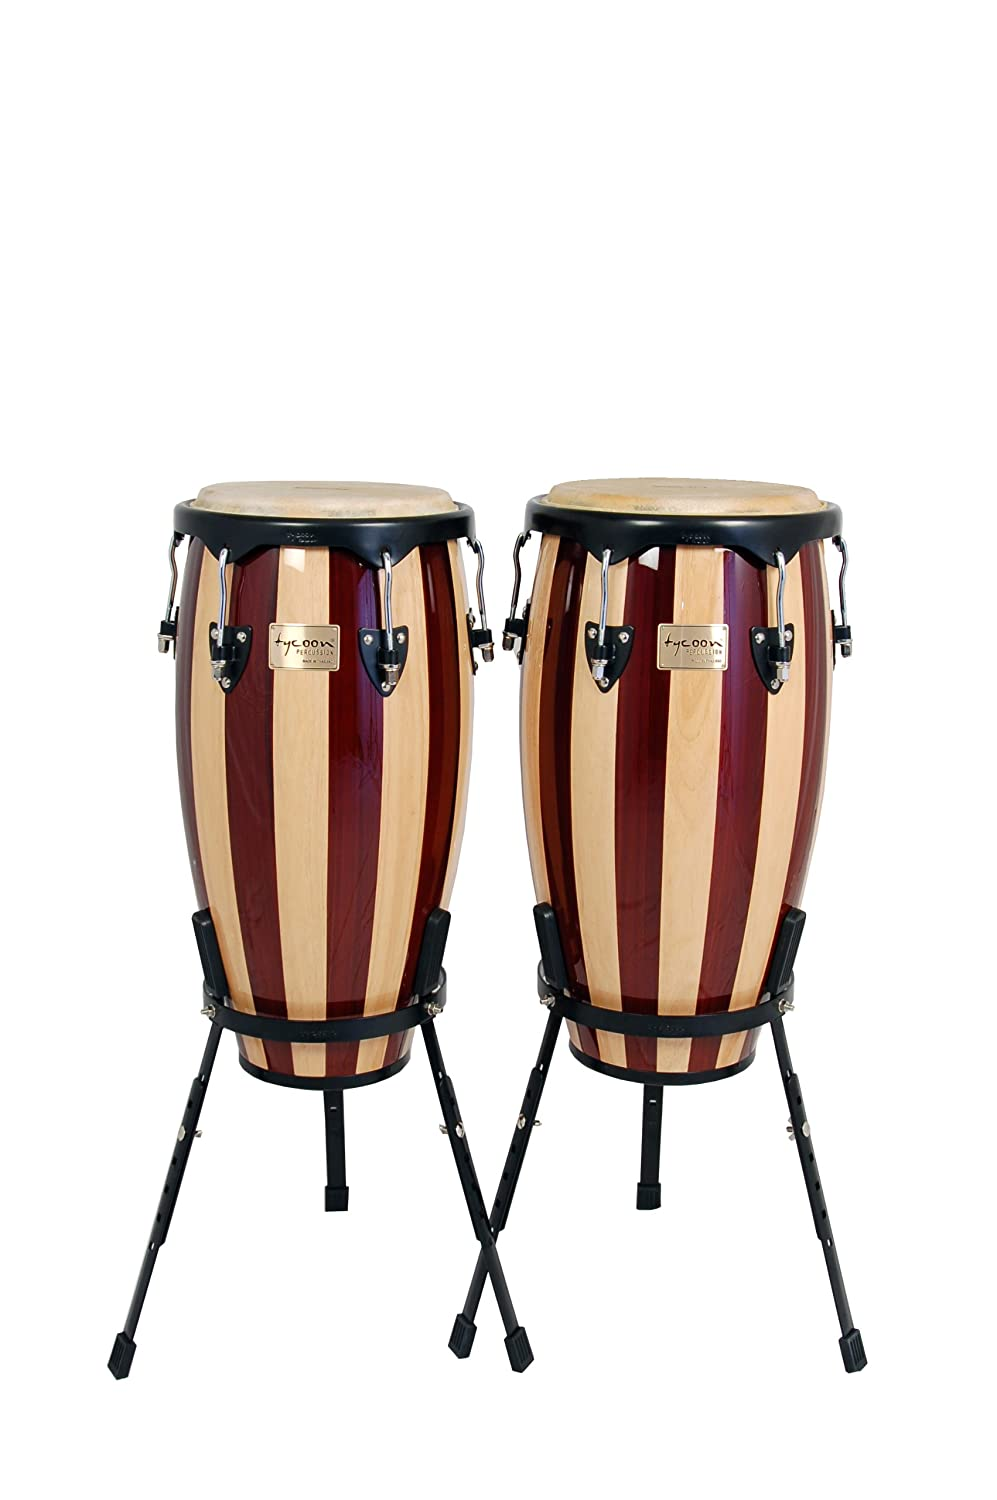 Tycoon Percussion 11.75 Inch & 12.5 Inch Congas Retro Finish With Single Stands TC-92 B RE/S